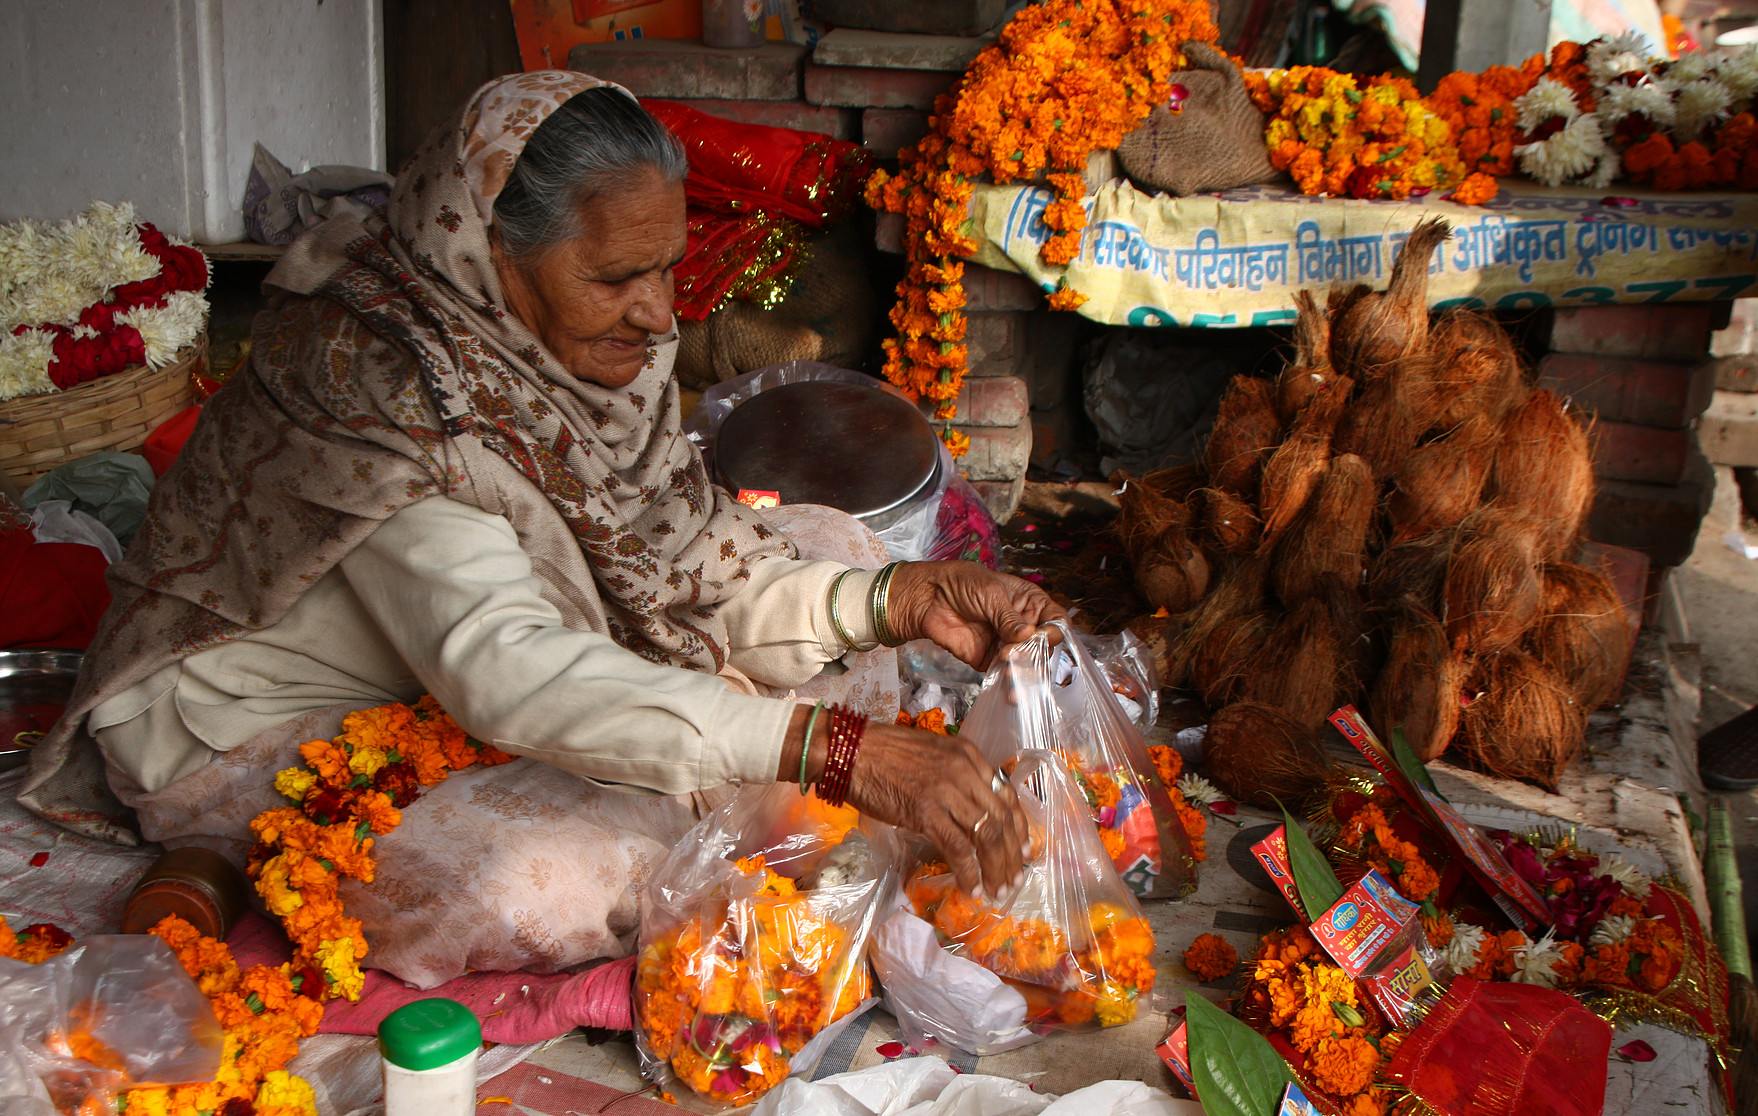 A woman selling flowers, New Delhi, India